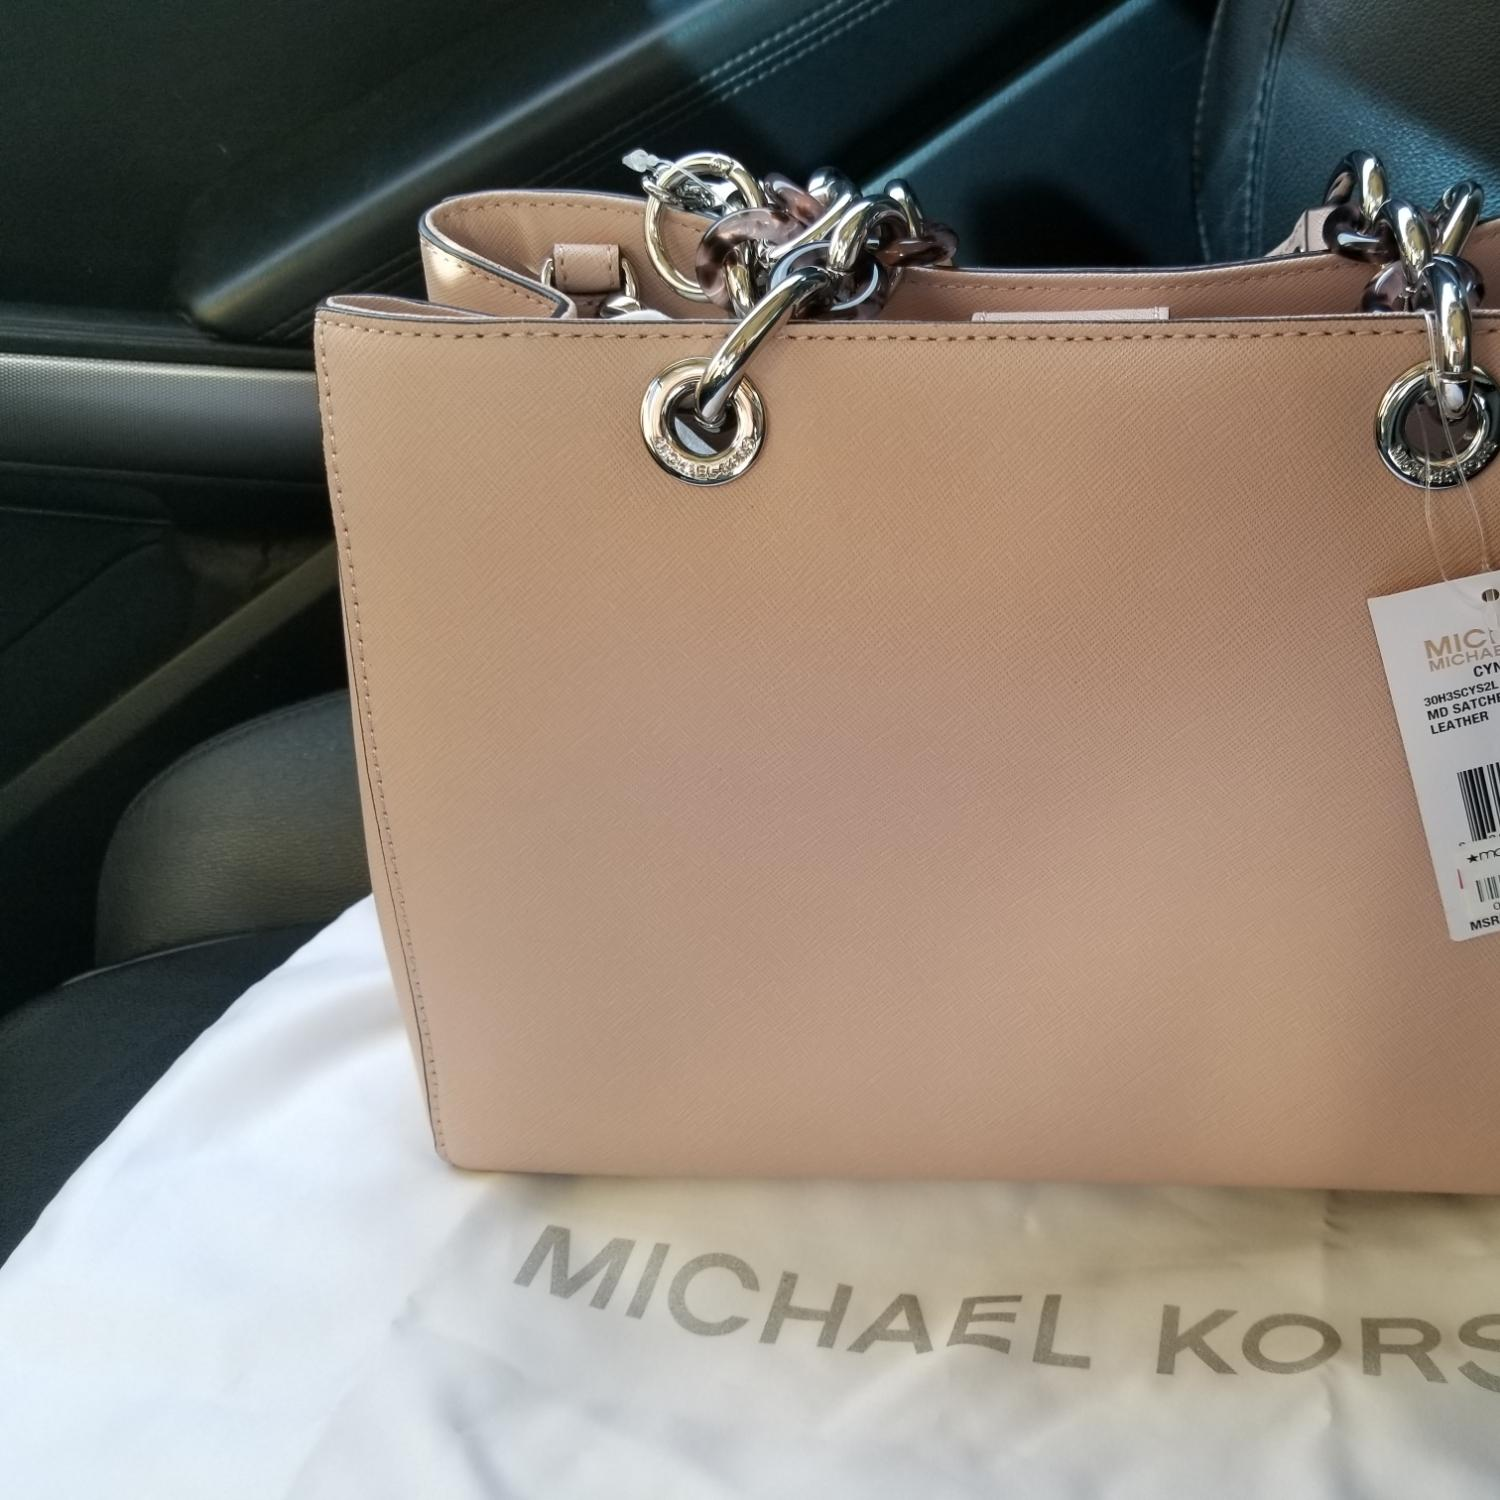 07e49265f195 123456789101112 e0261 85439; wholesale michael kors satchel in nude. 123456  b3a3e 24cdb